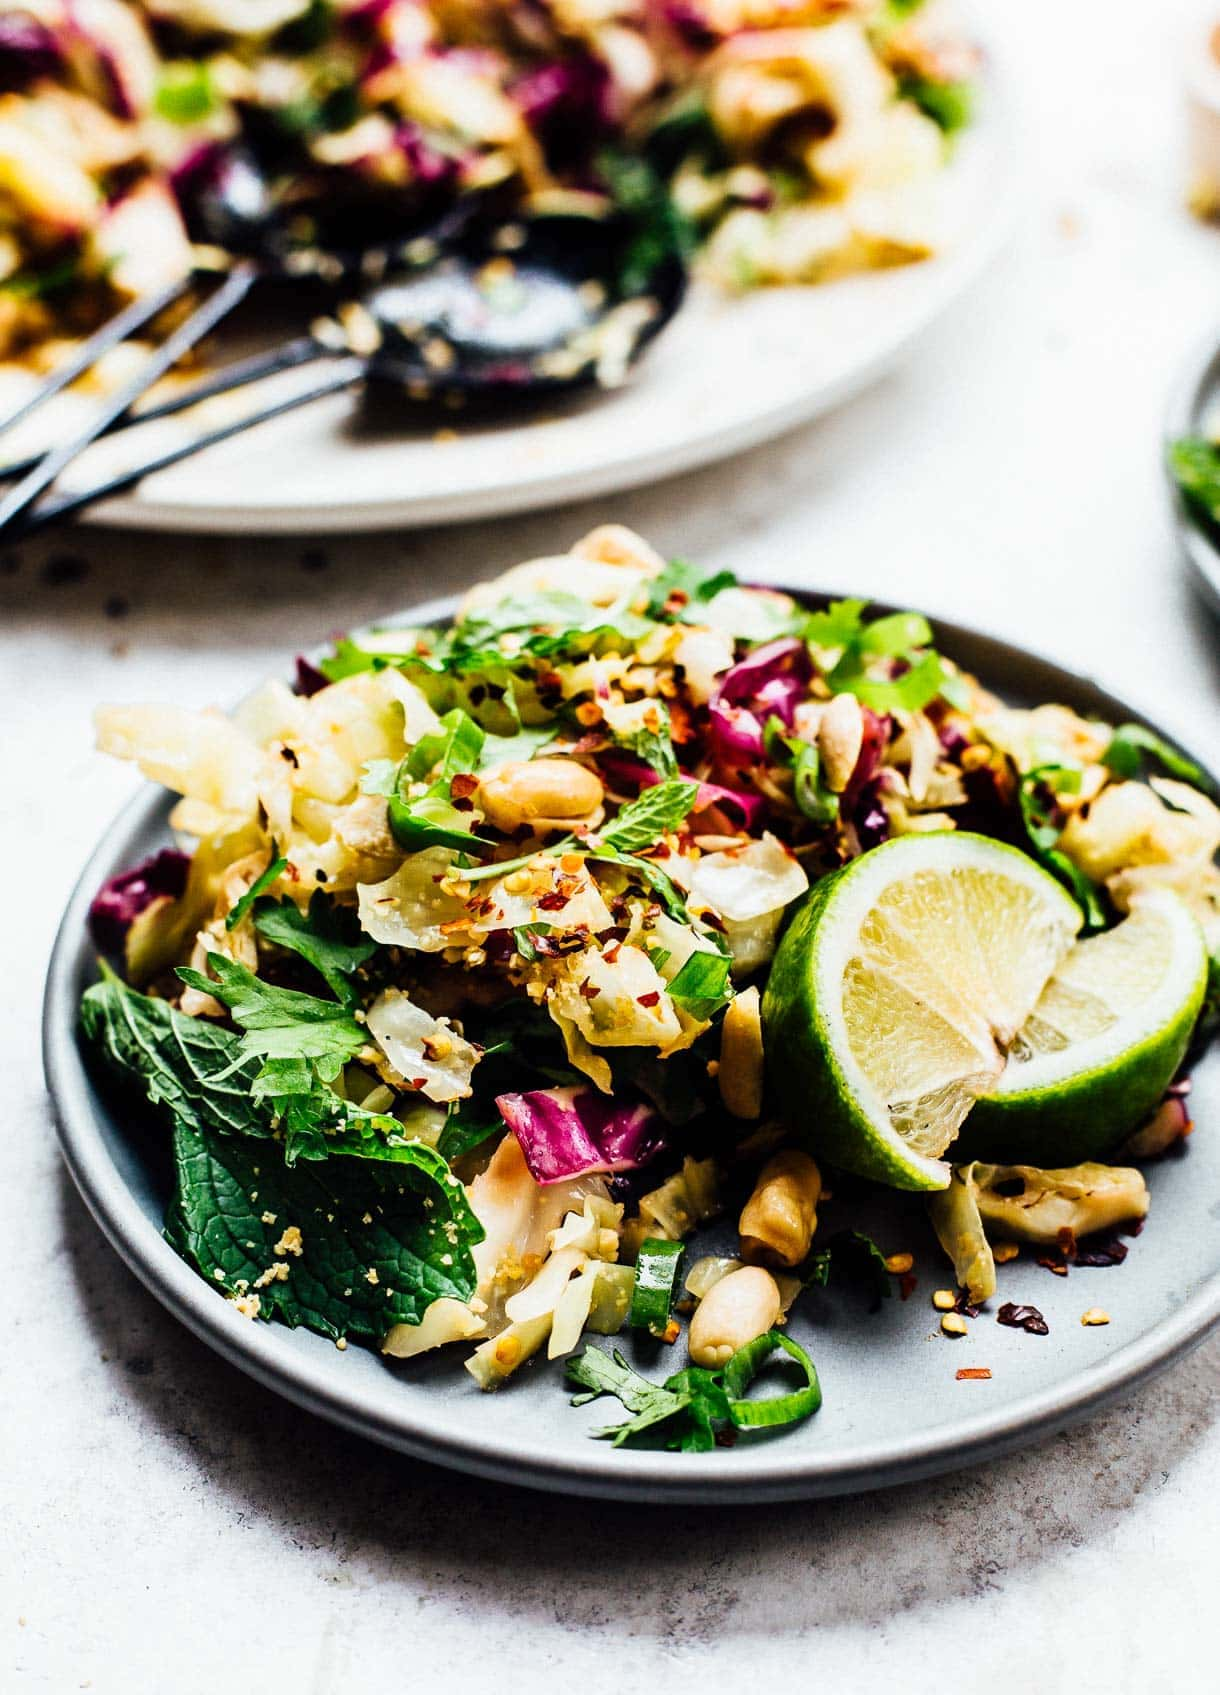 Grilled Asian Cabbage Salad with fresh herbs